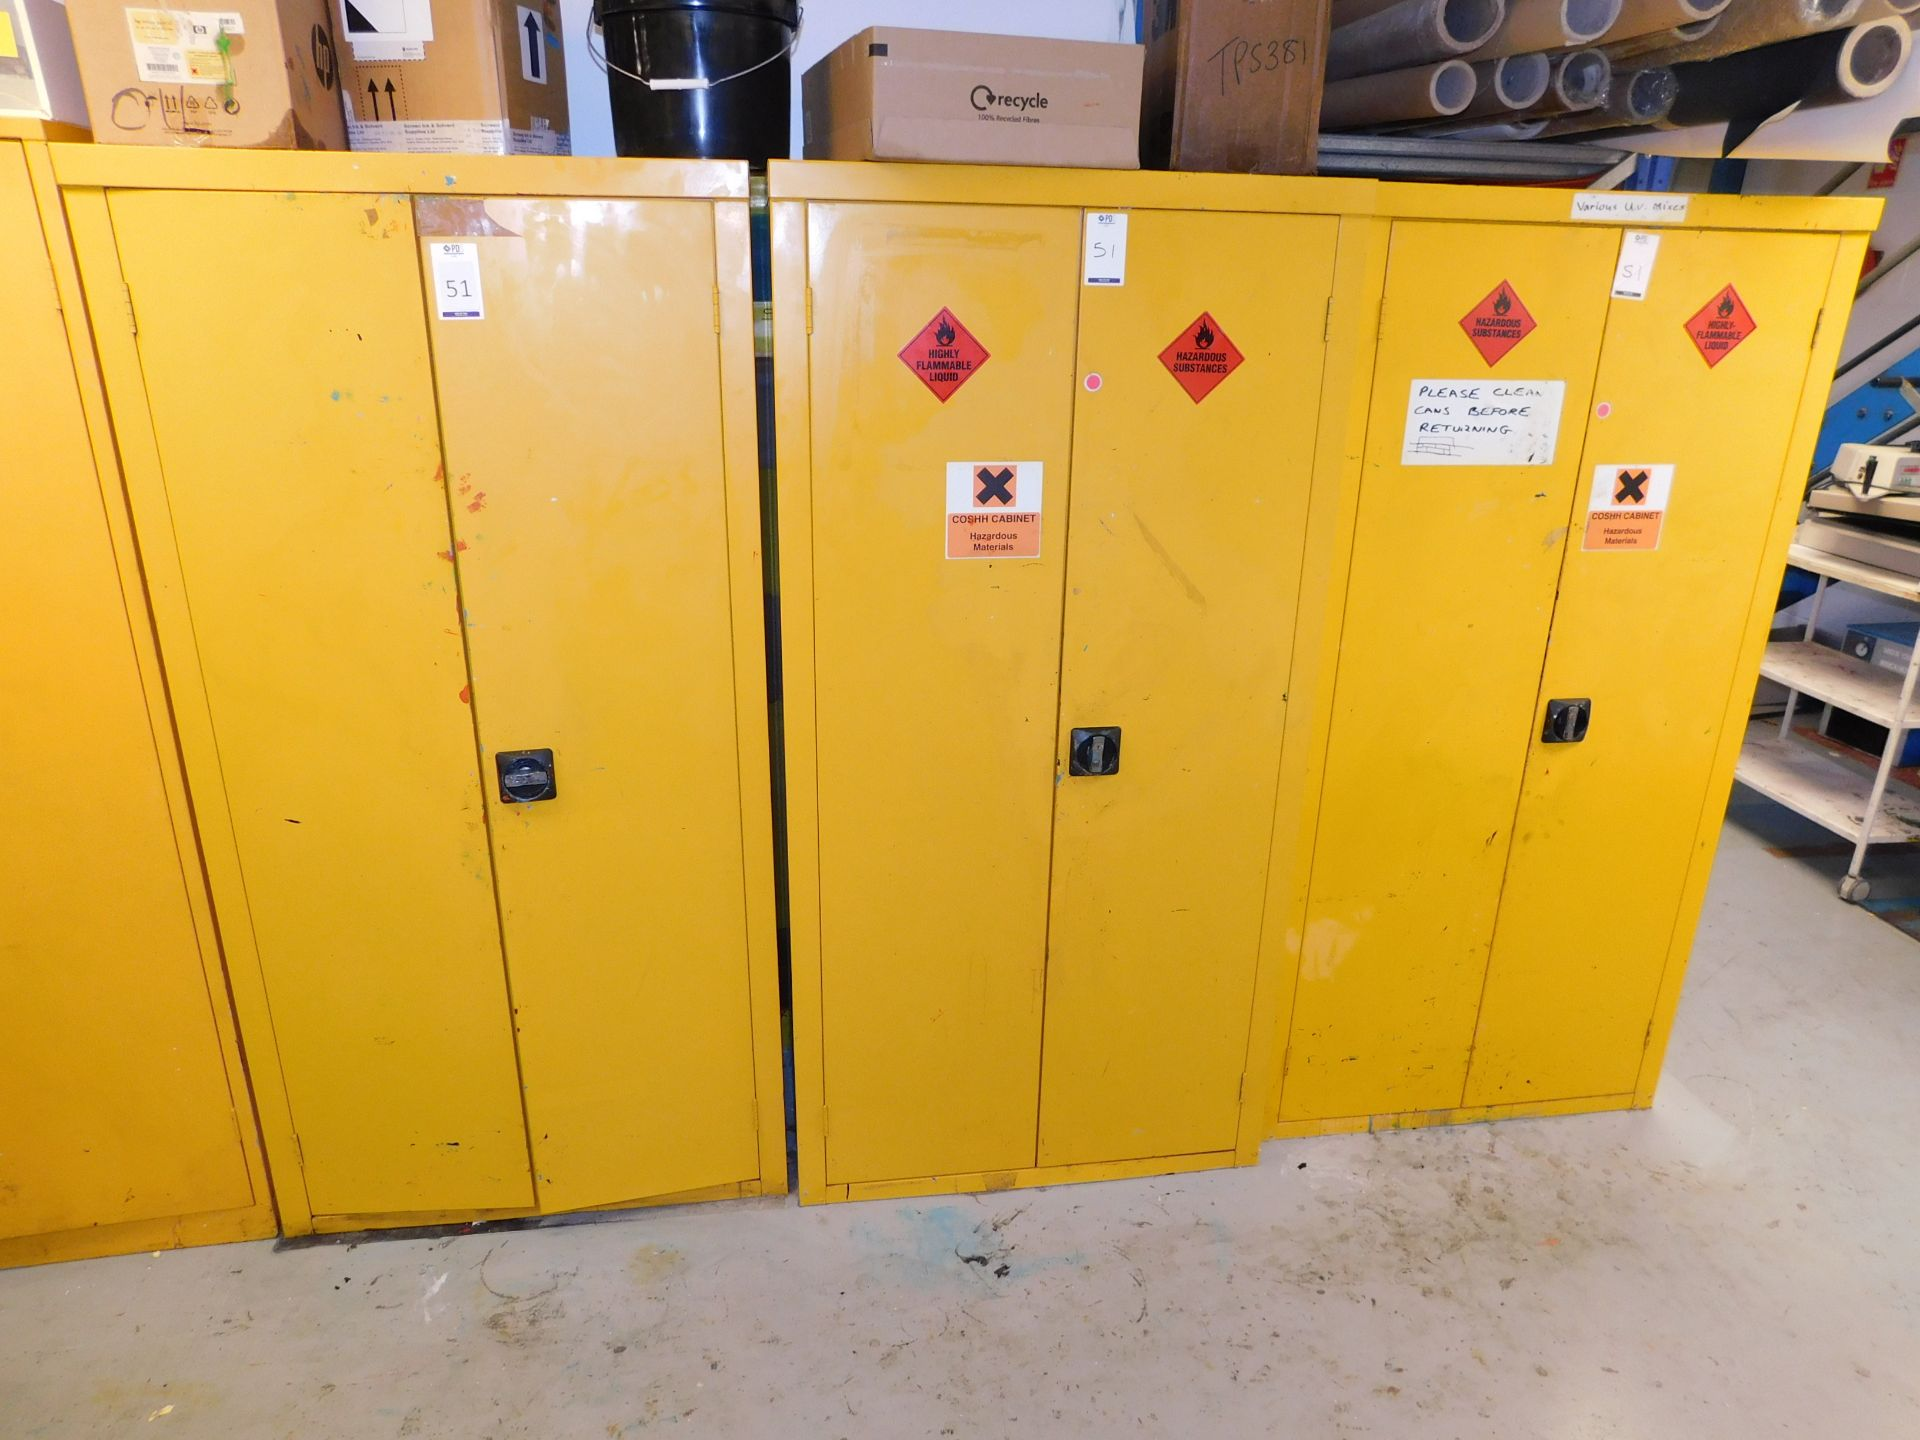 Los 51 - 3 Fire Resistant Double Door Cabinets & Contents to Include Quantity of Screen Printing